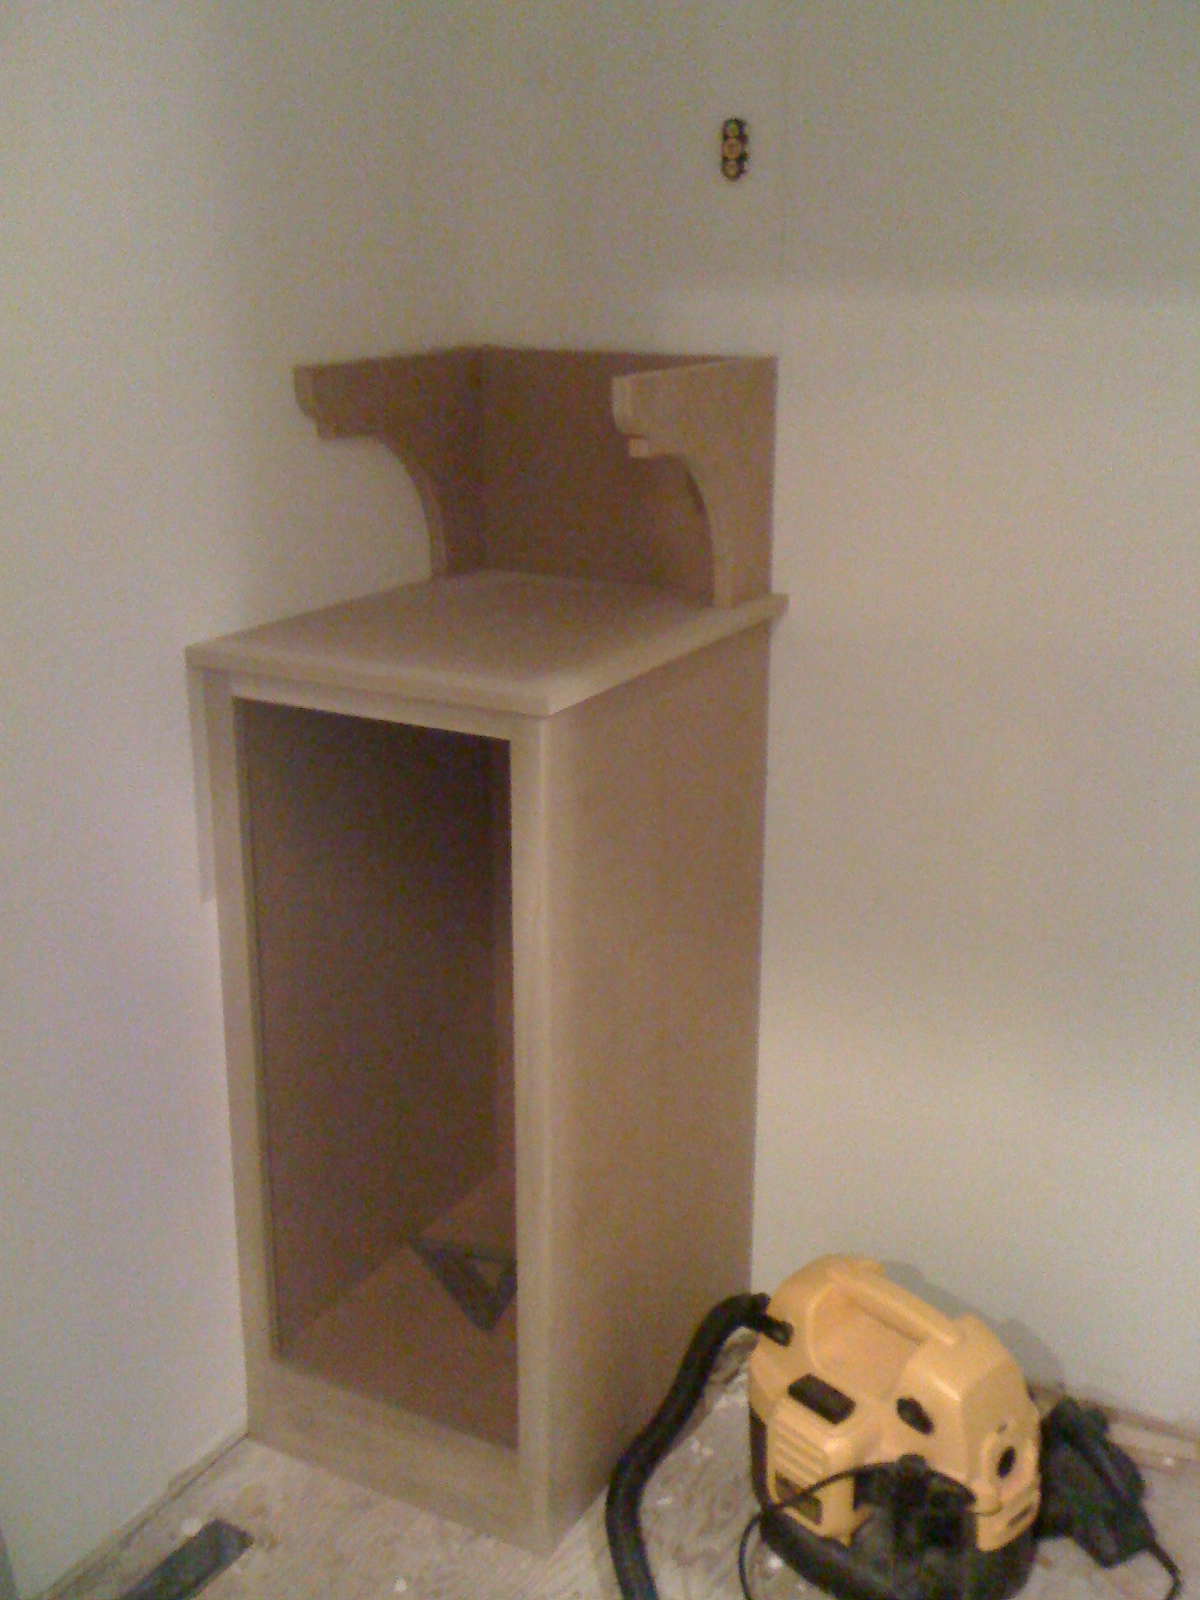 Now i have the lower cabinet built installed and the corbels set